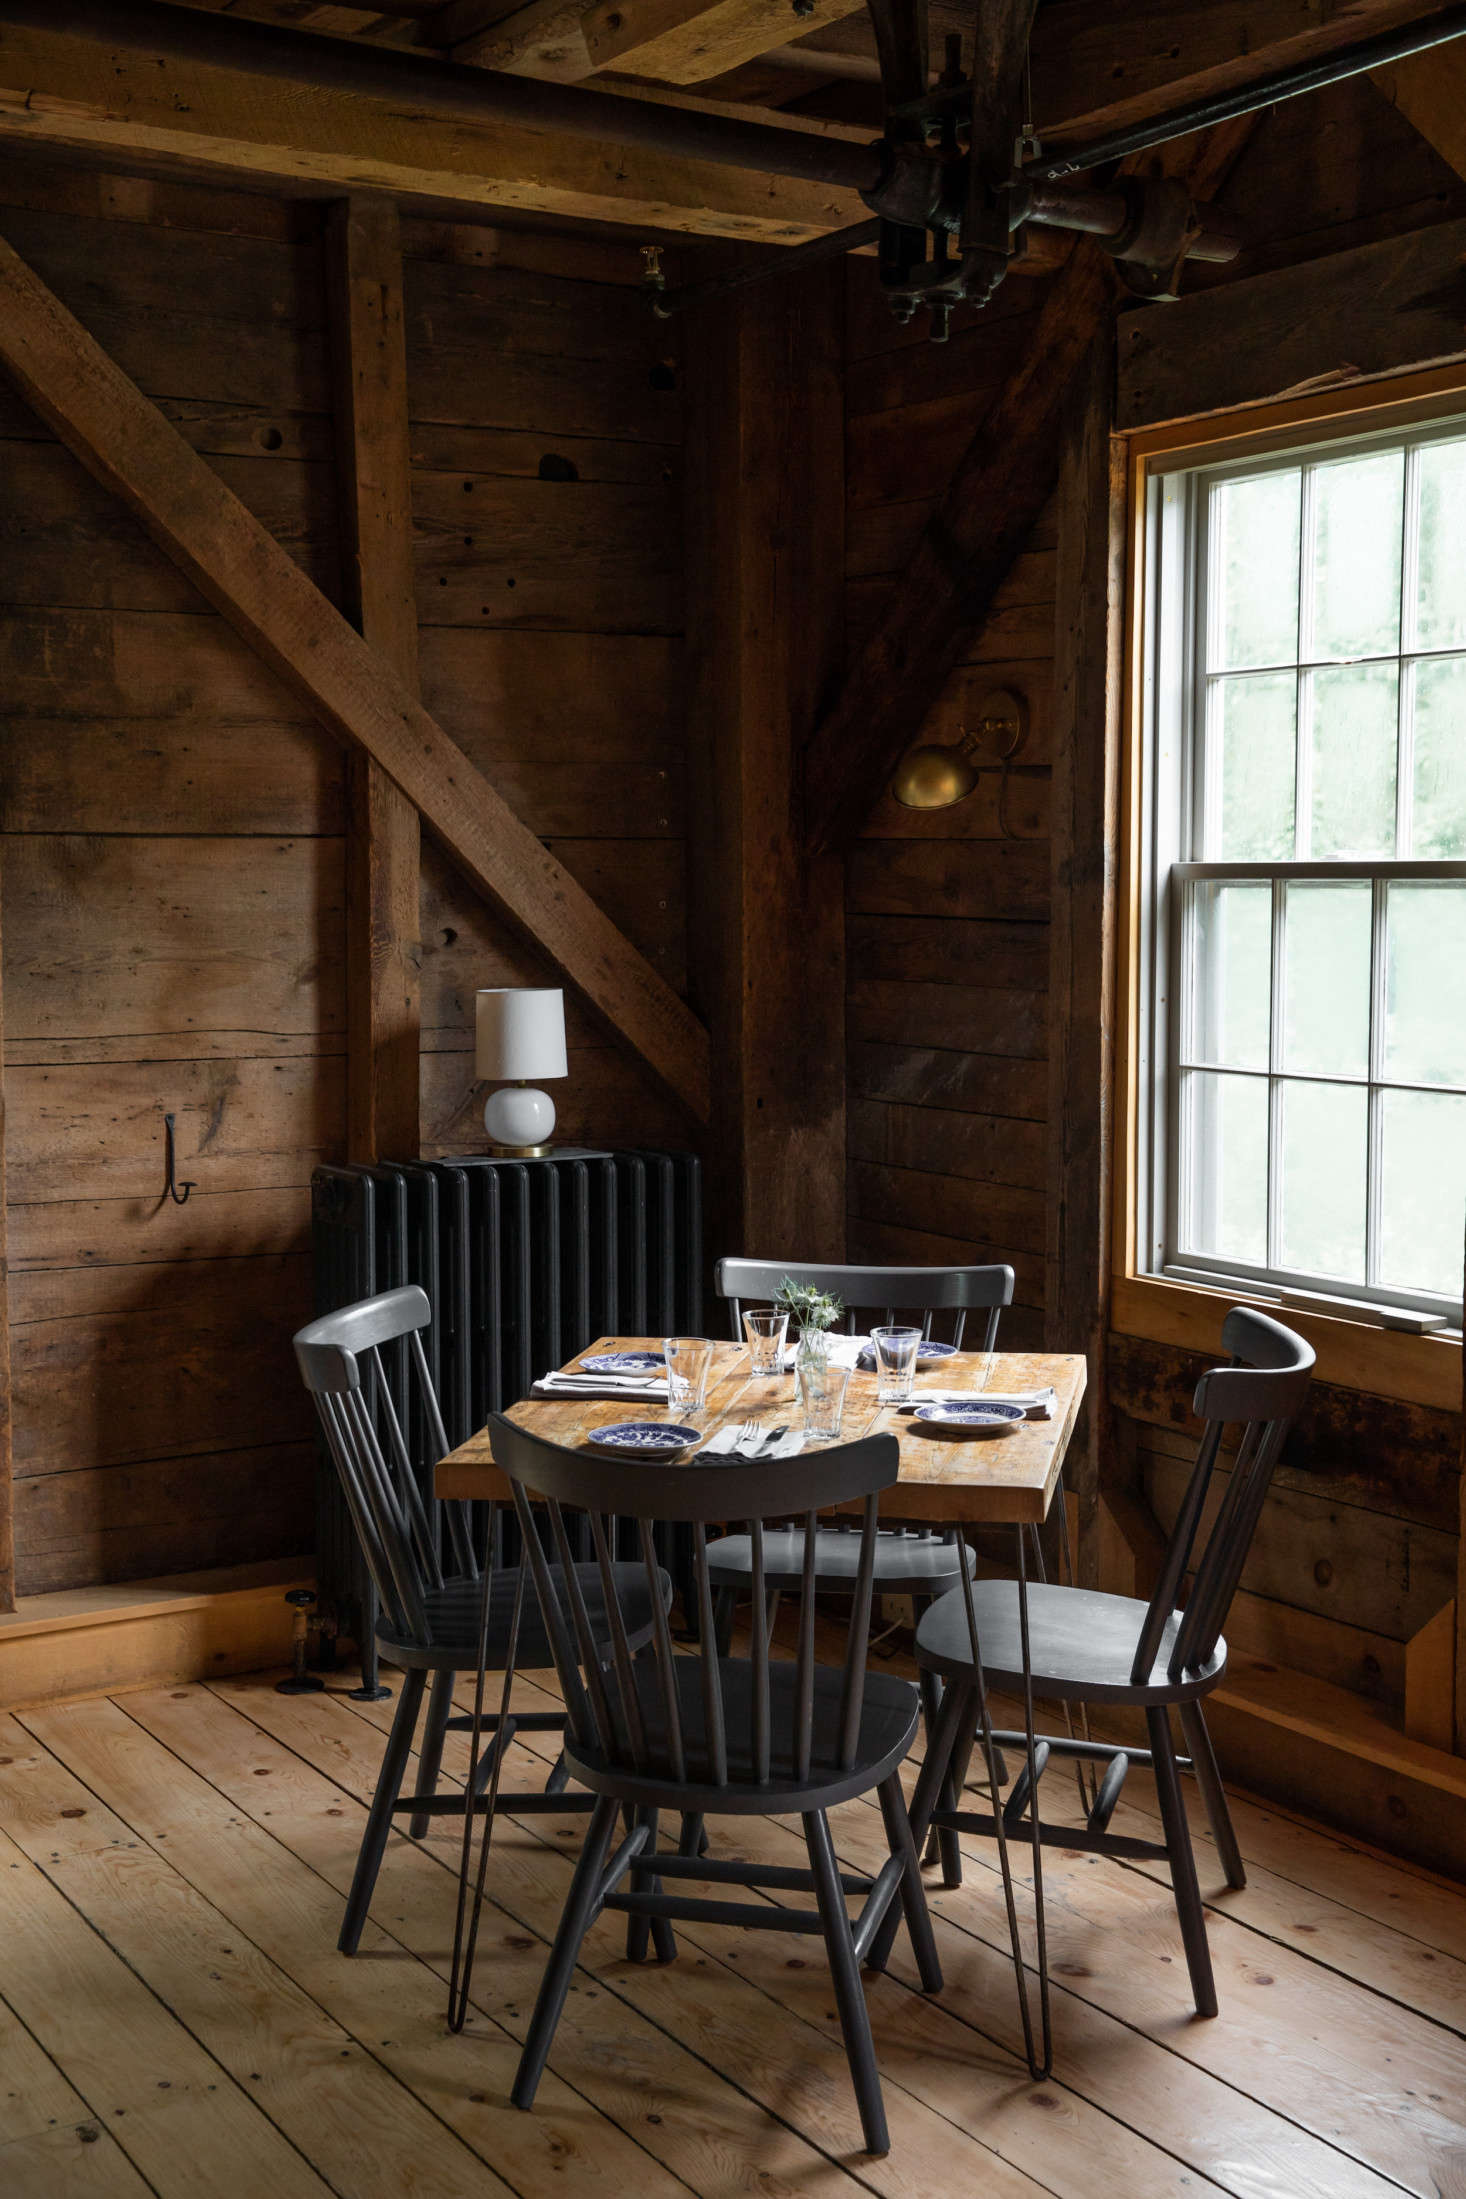 French built the tables with help from a local carpenter, using salvaged wood and metal hairpin legs. The chairs are from Hayes Unfinished Furniture in Brewer, Maine, painted in Benjamin Moore&#8